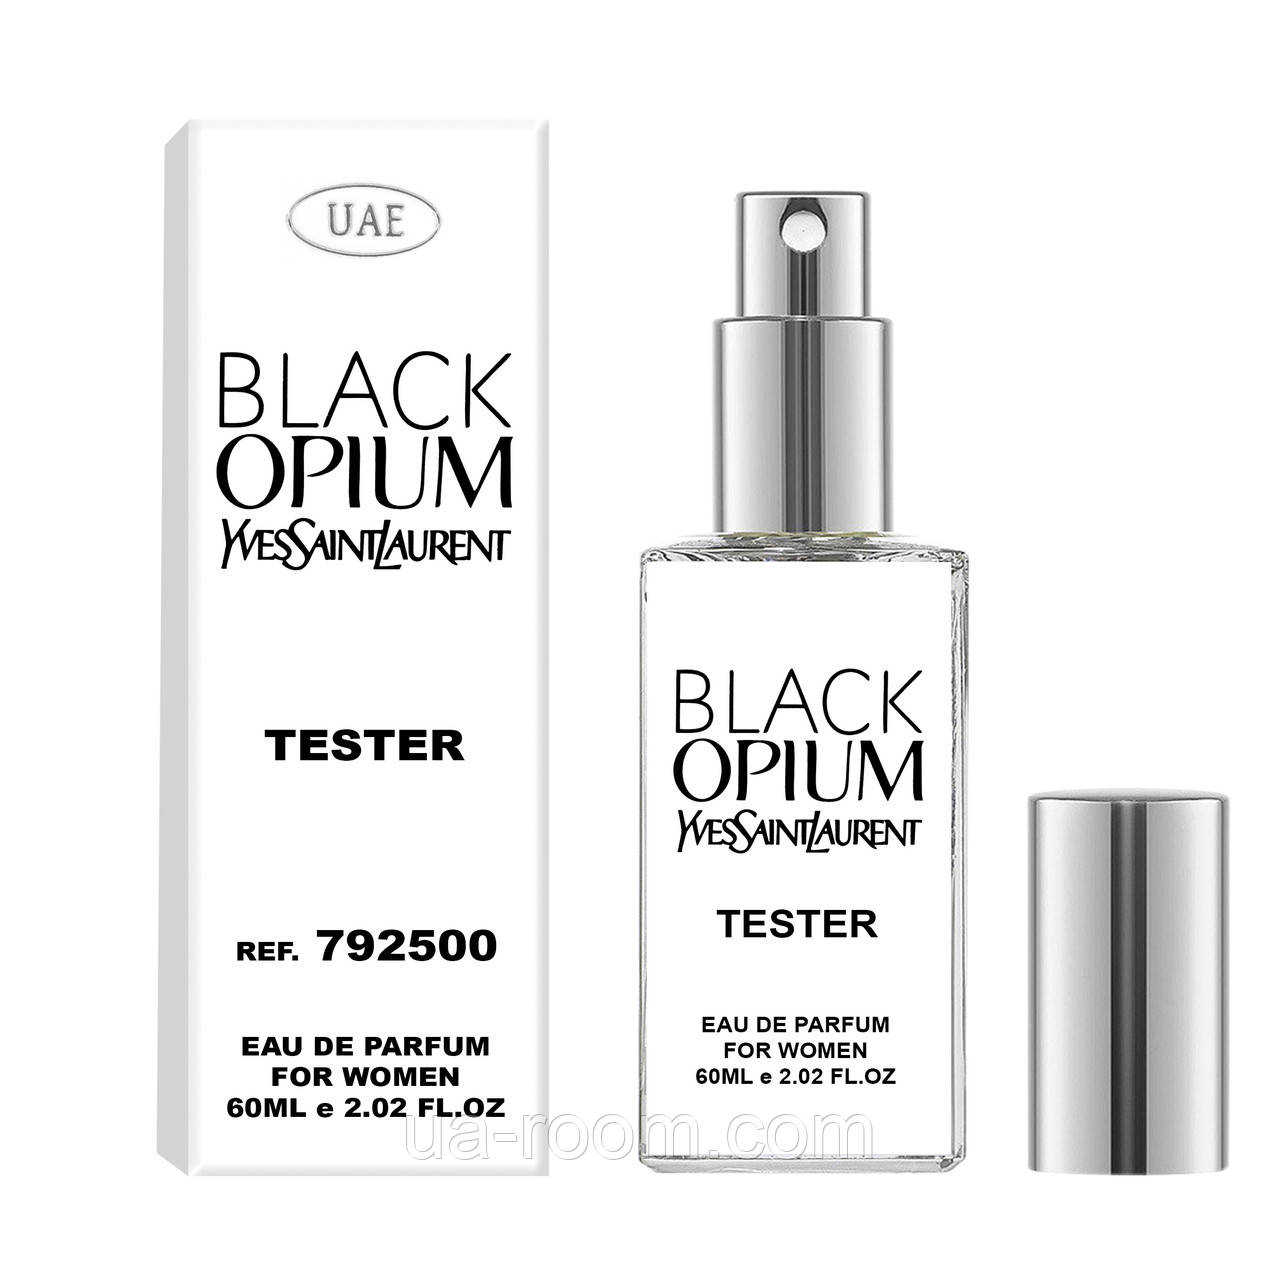 Тестер женский  UAE Yves Saint Laurent Black Opium, 60 мл.